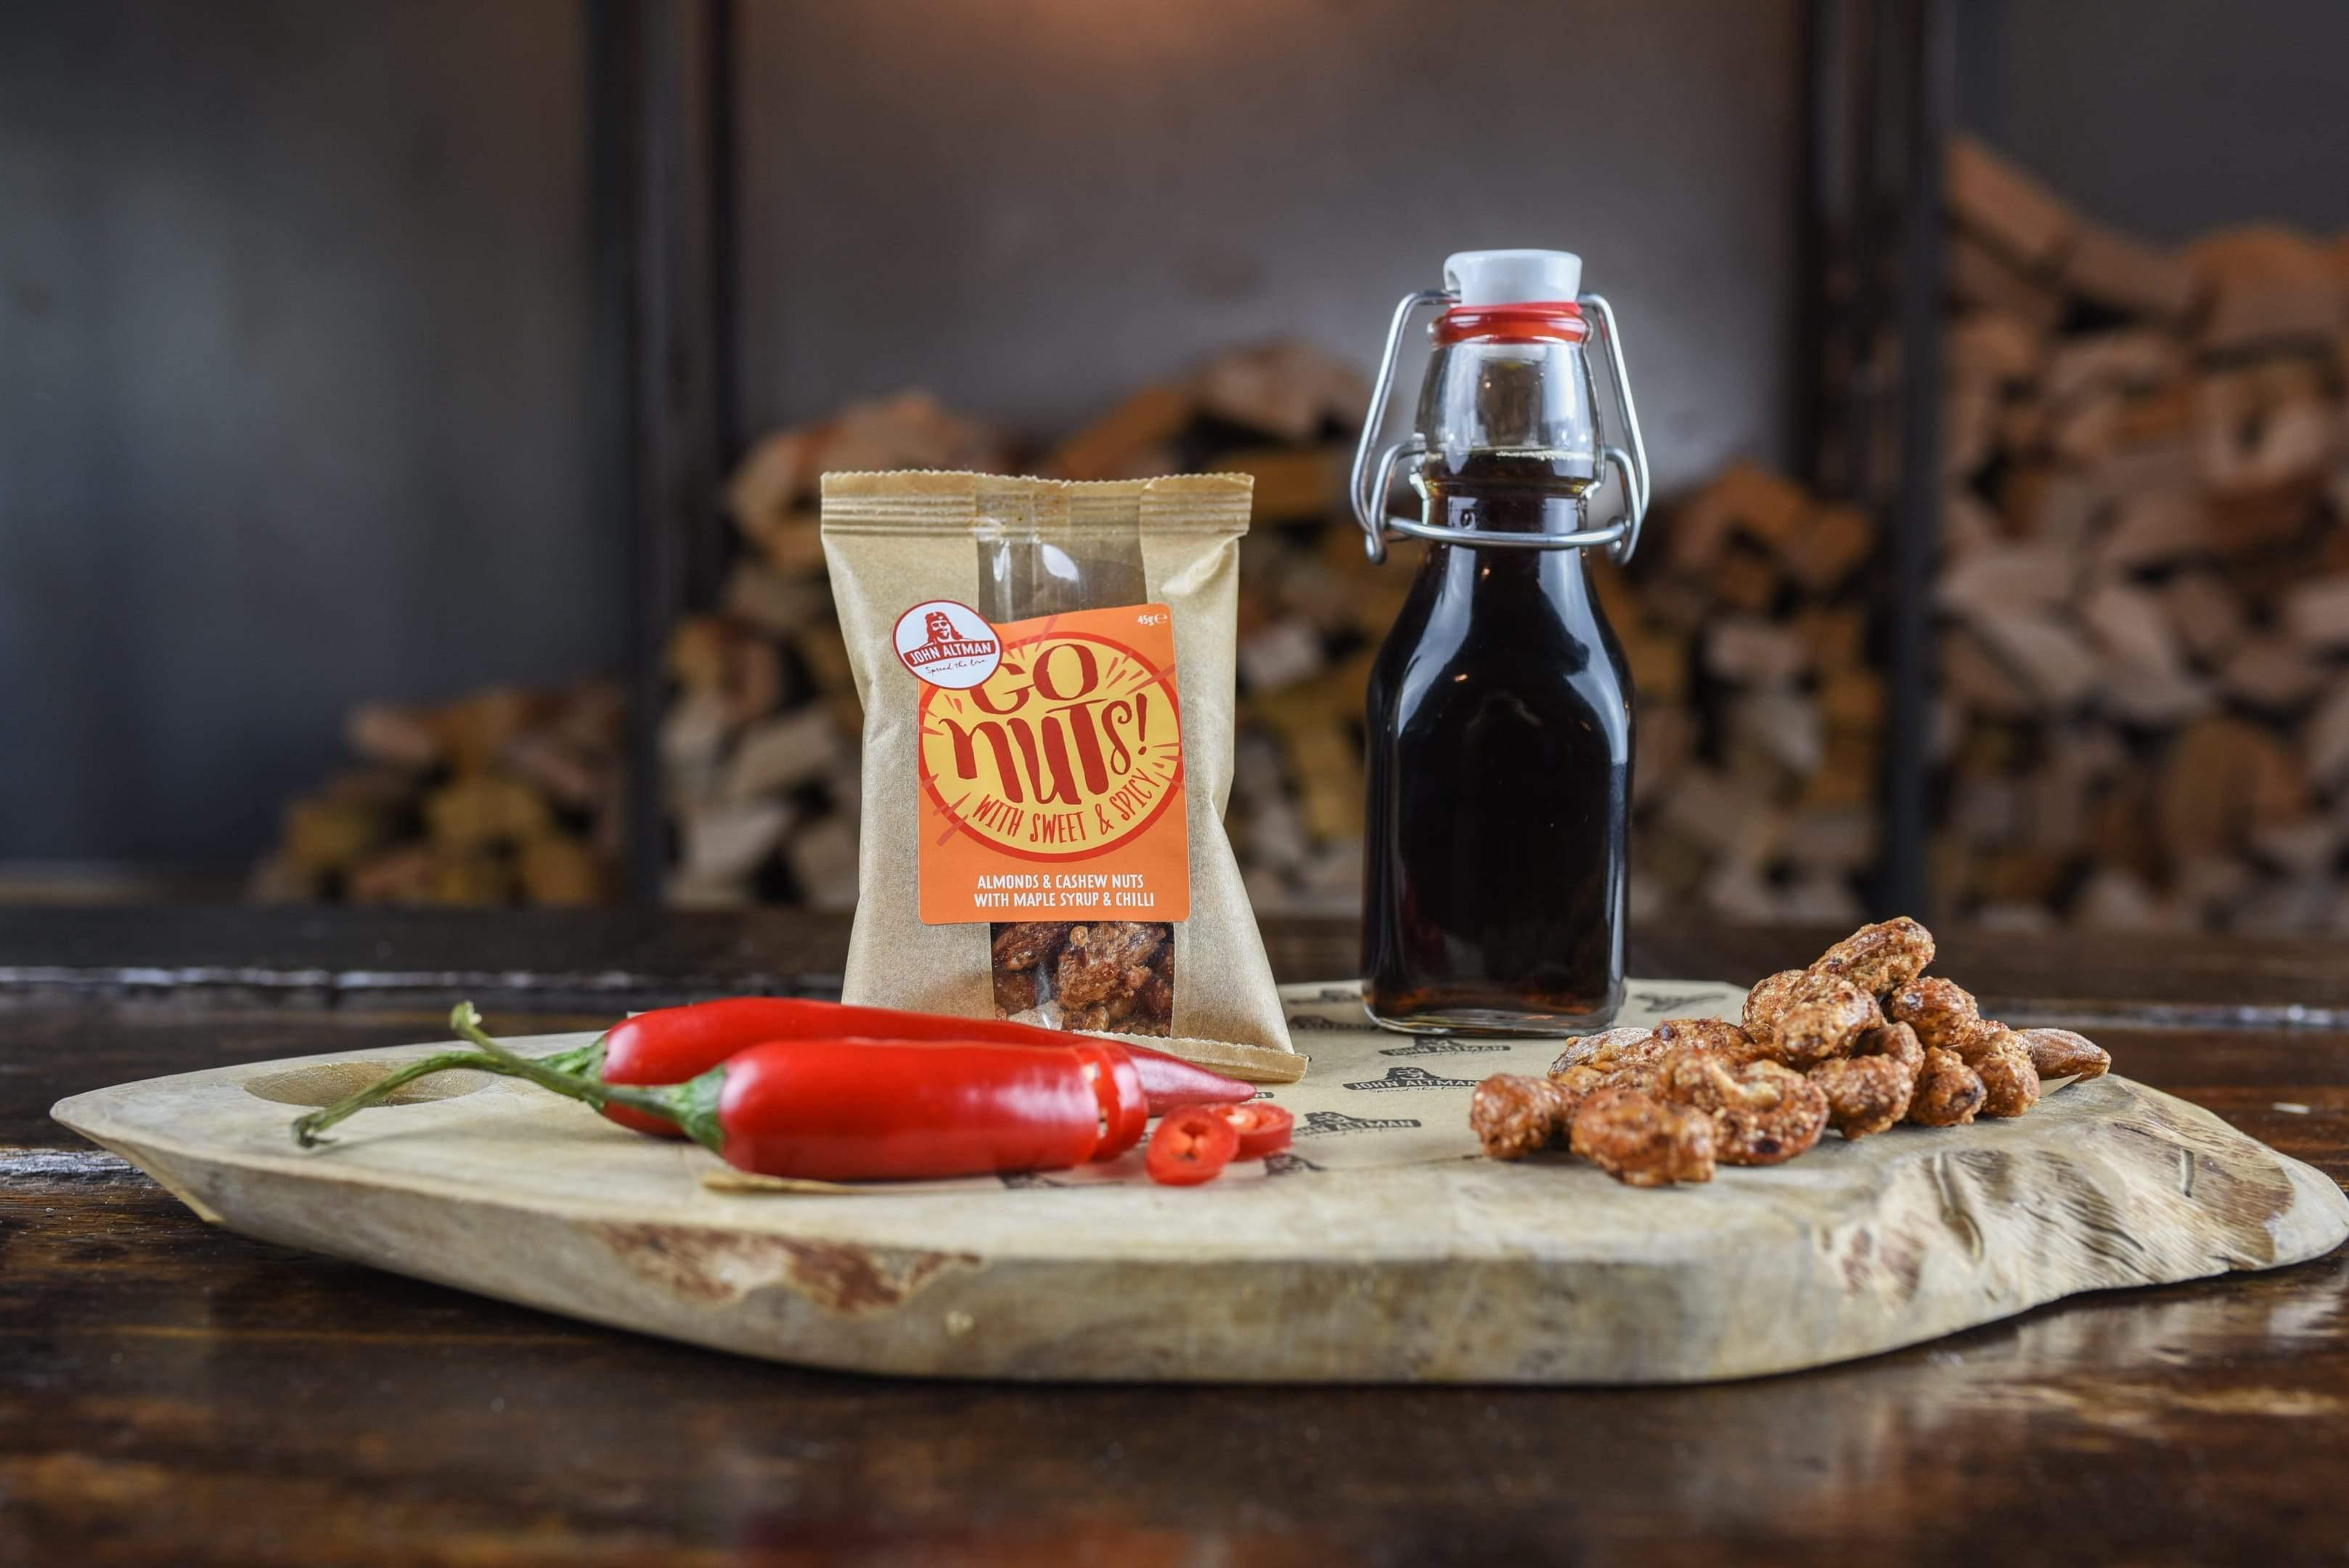 John Altman Maple Syrup & Chilli nootjes in horeca